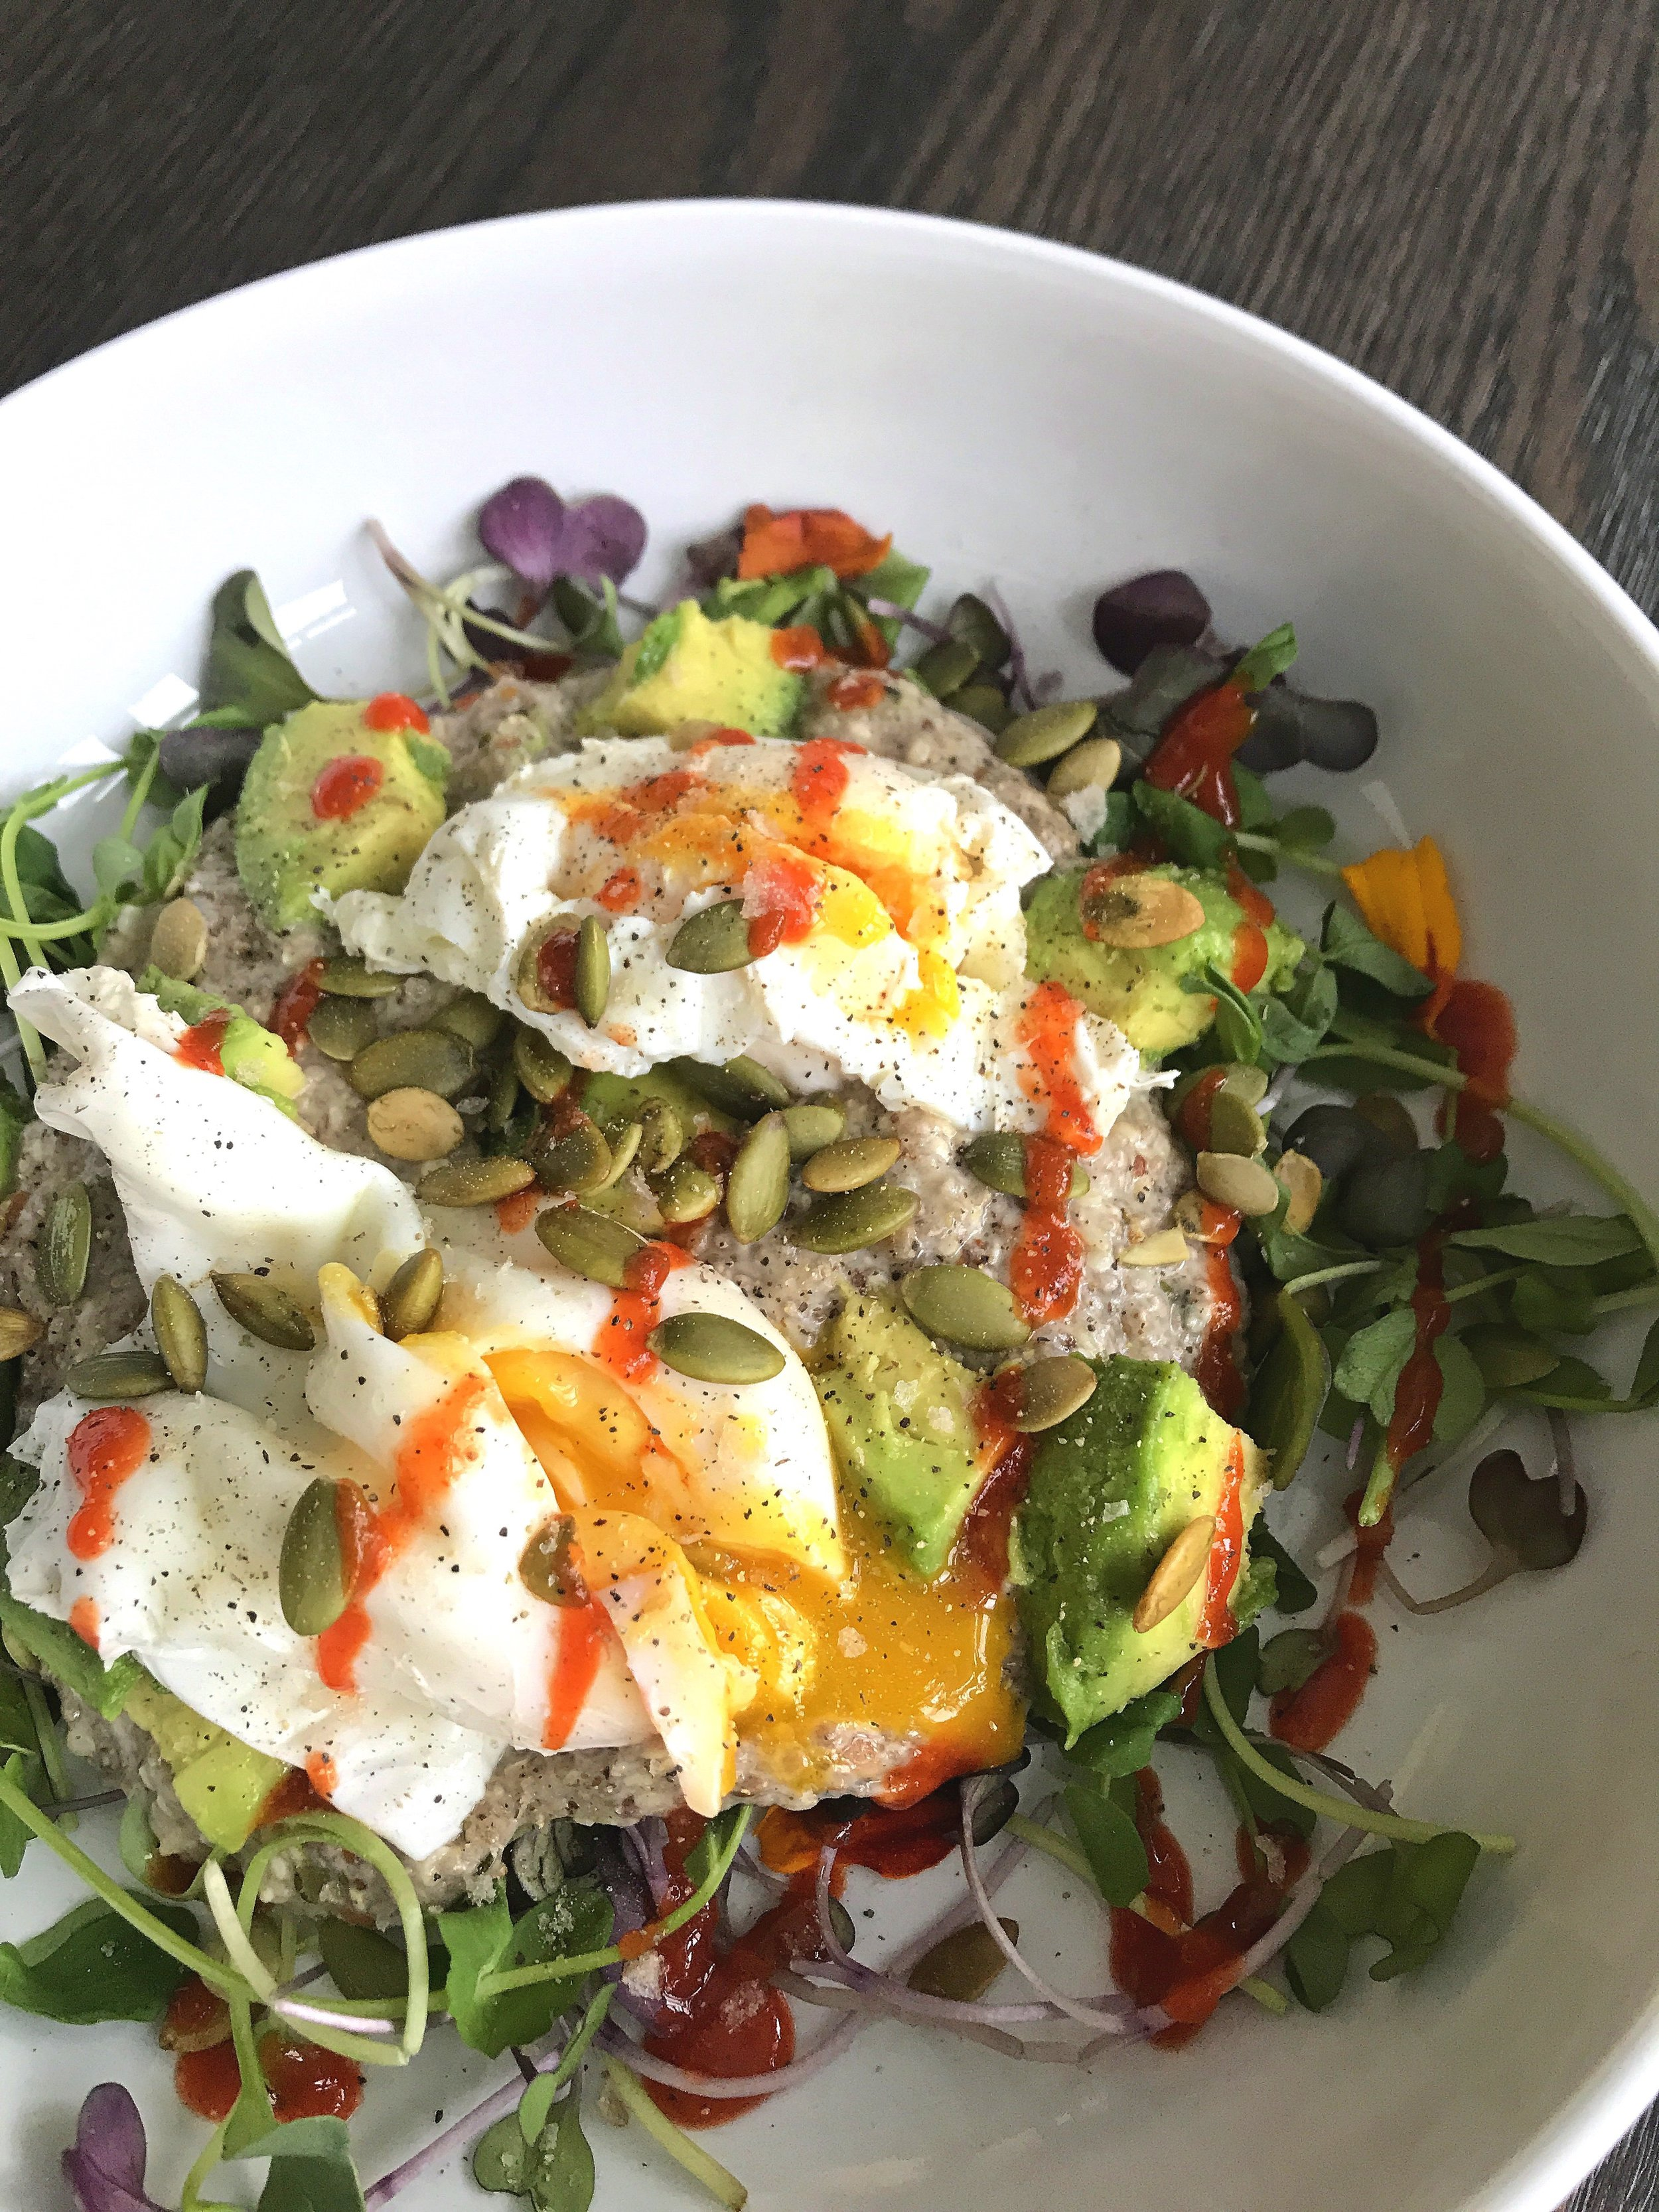 Super Seedy Protein Porridge served with microgreens, diced avocado, pasture-raised poached egg, toasted pumpkin seeds, and sriracha.